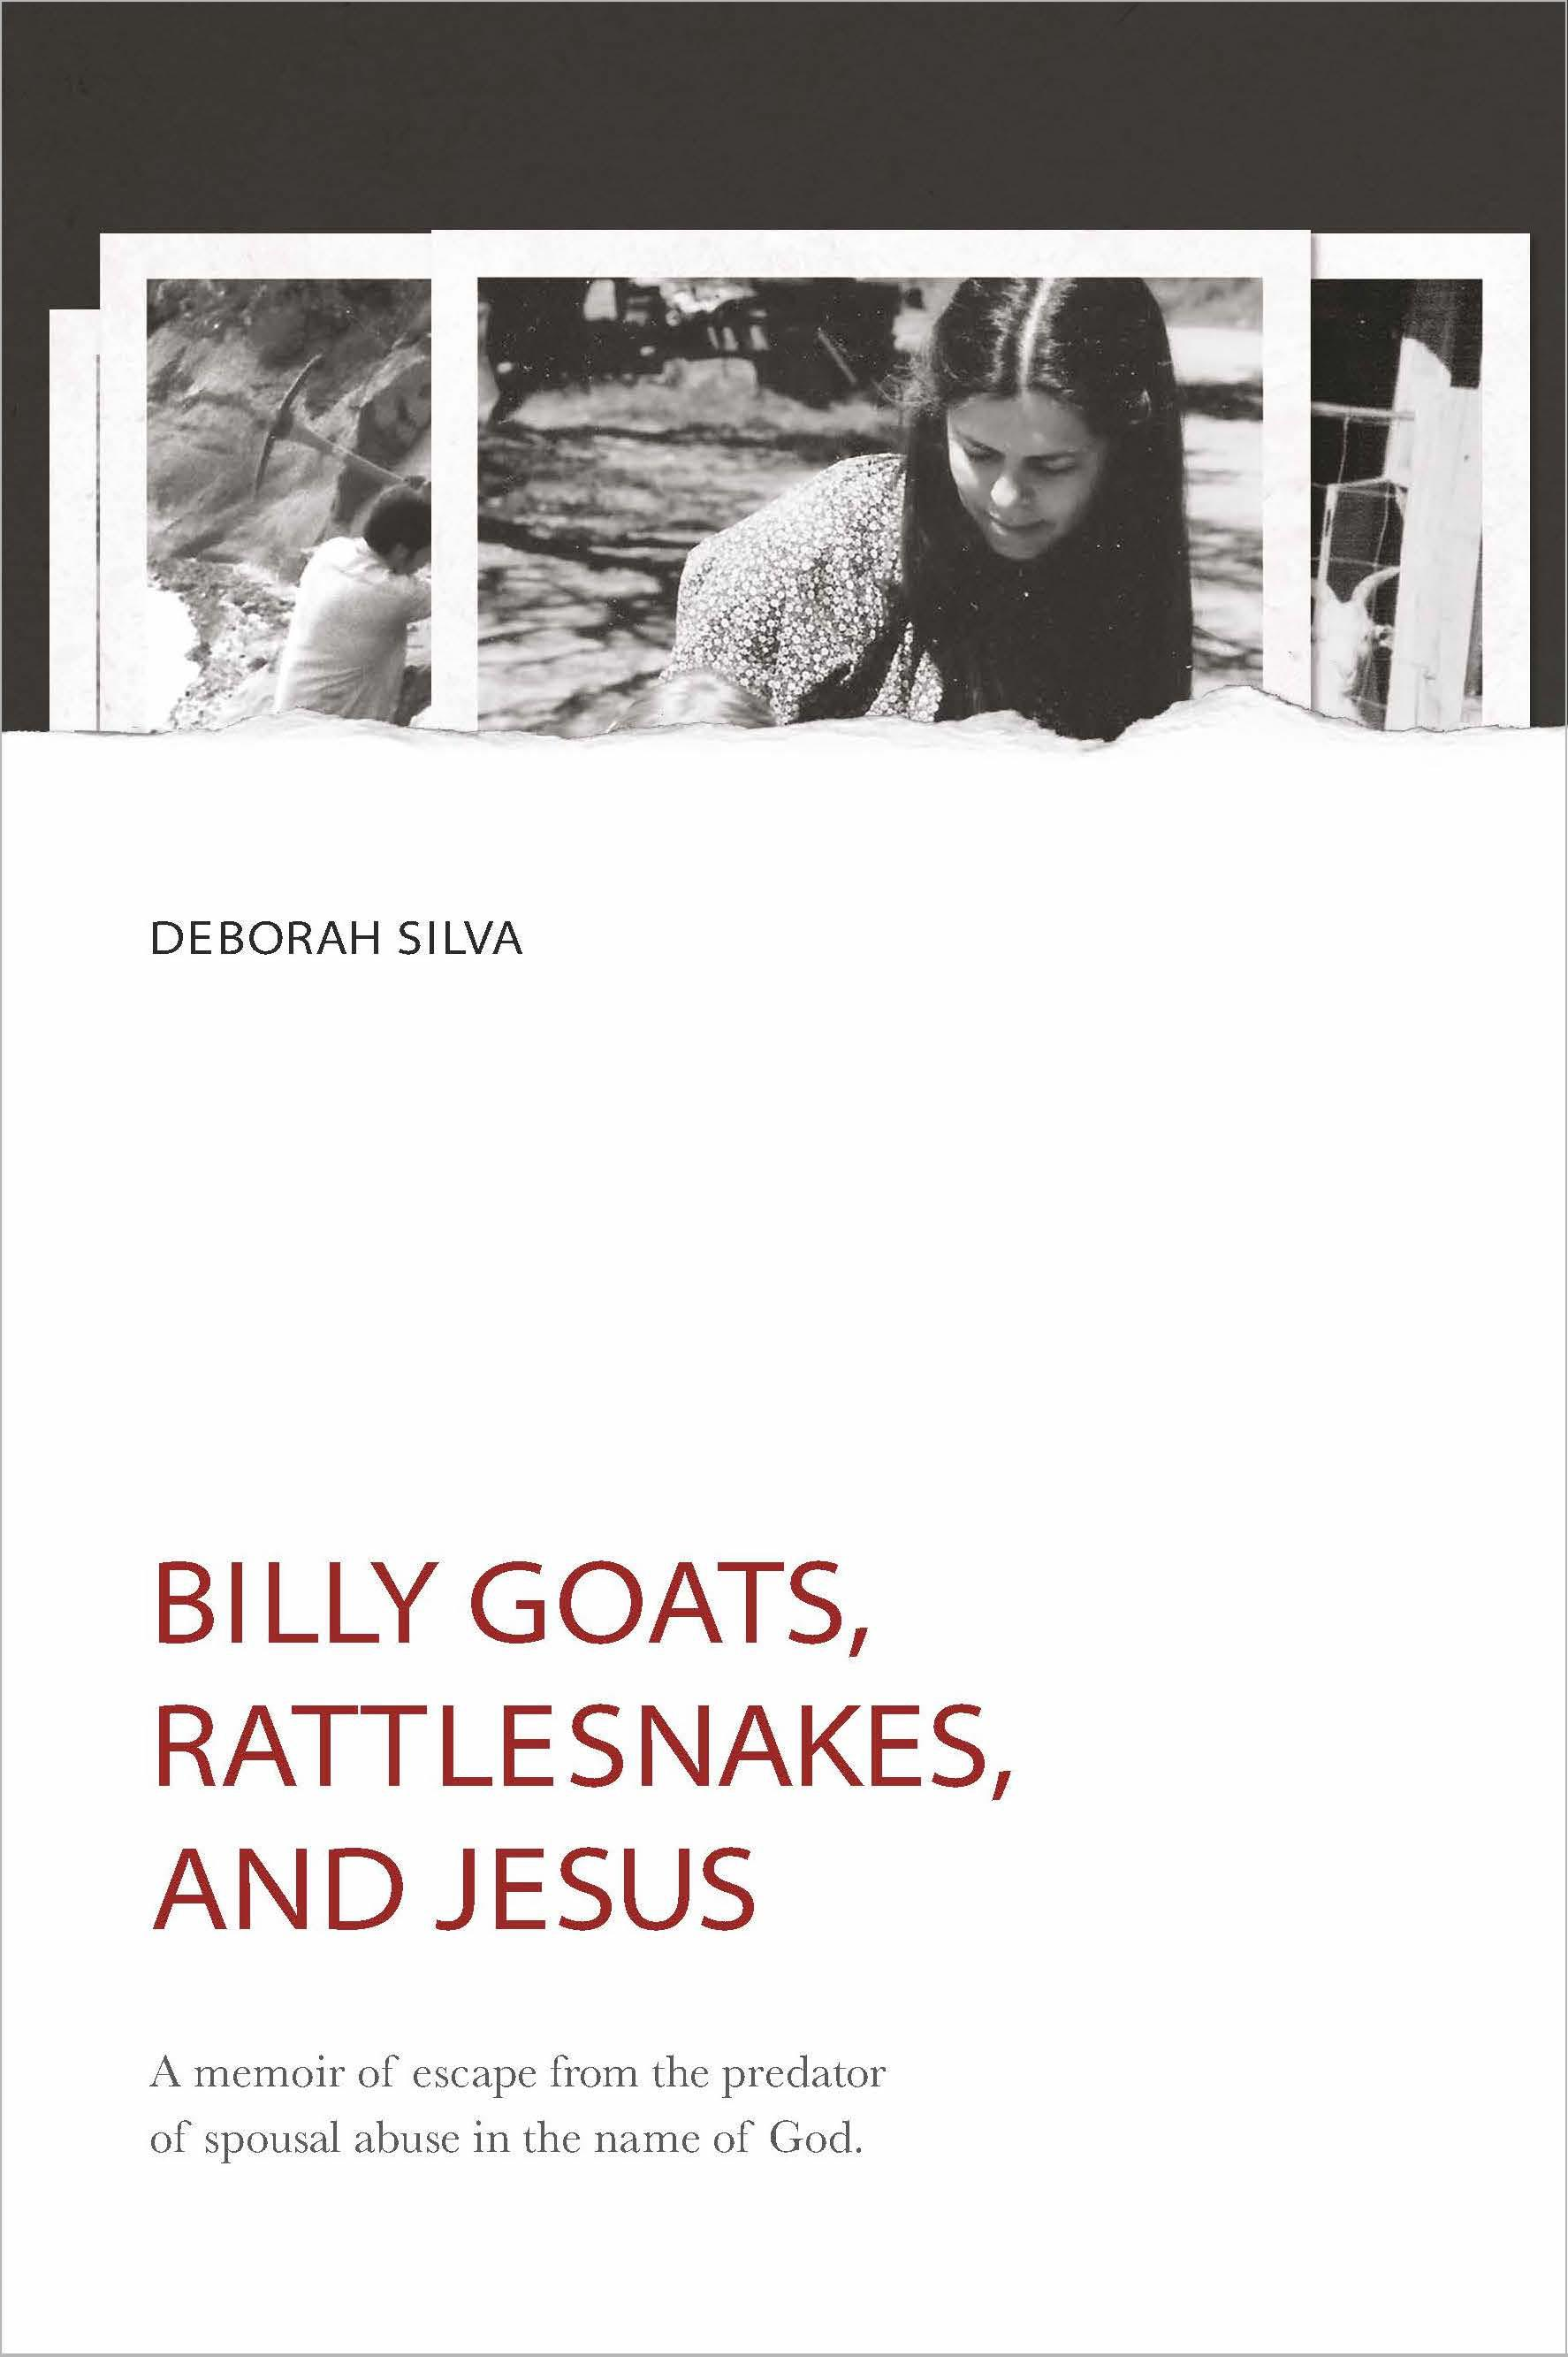 Billy Goats, Rattlesnakes, and Jesus: A memoir of escape from the predator of spousal abuse in the name of God.